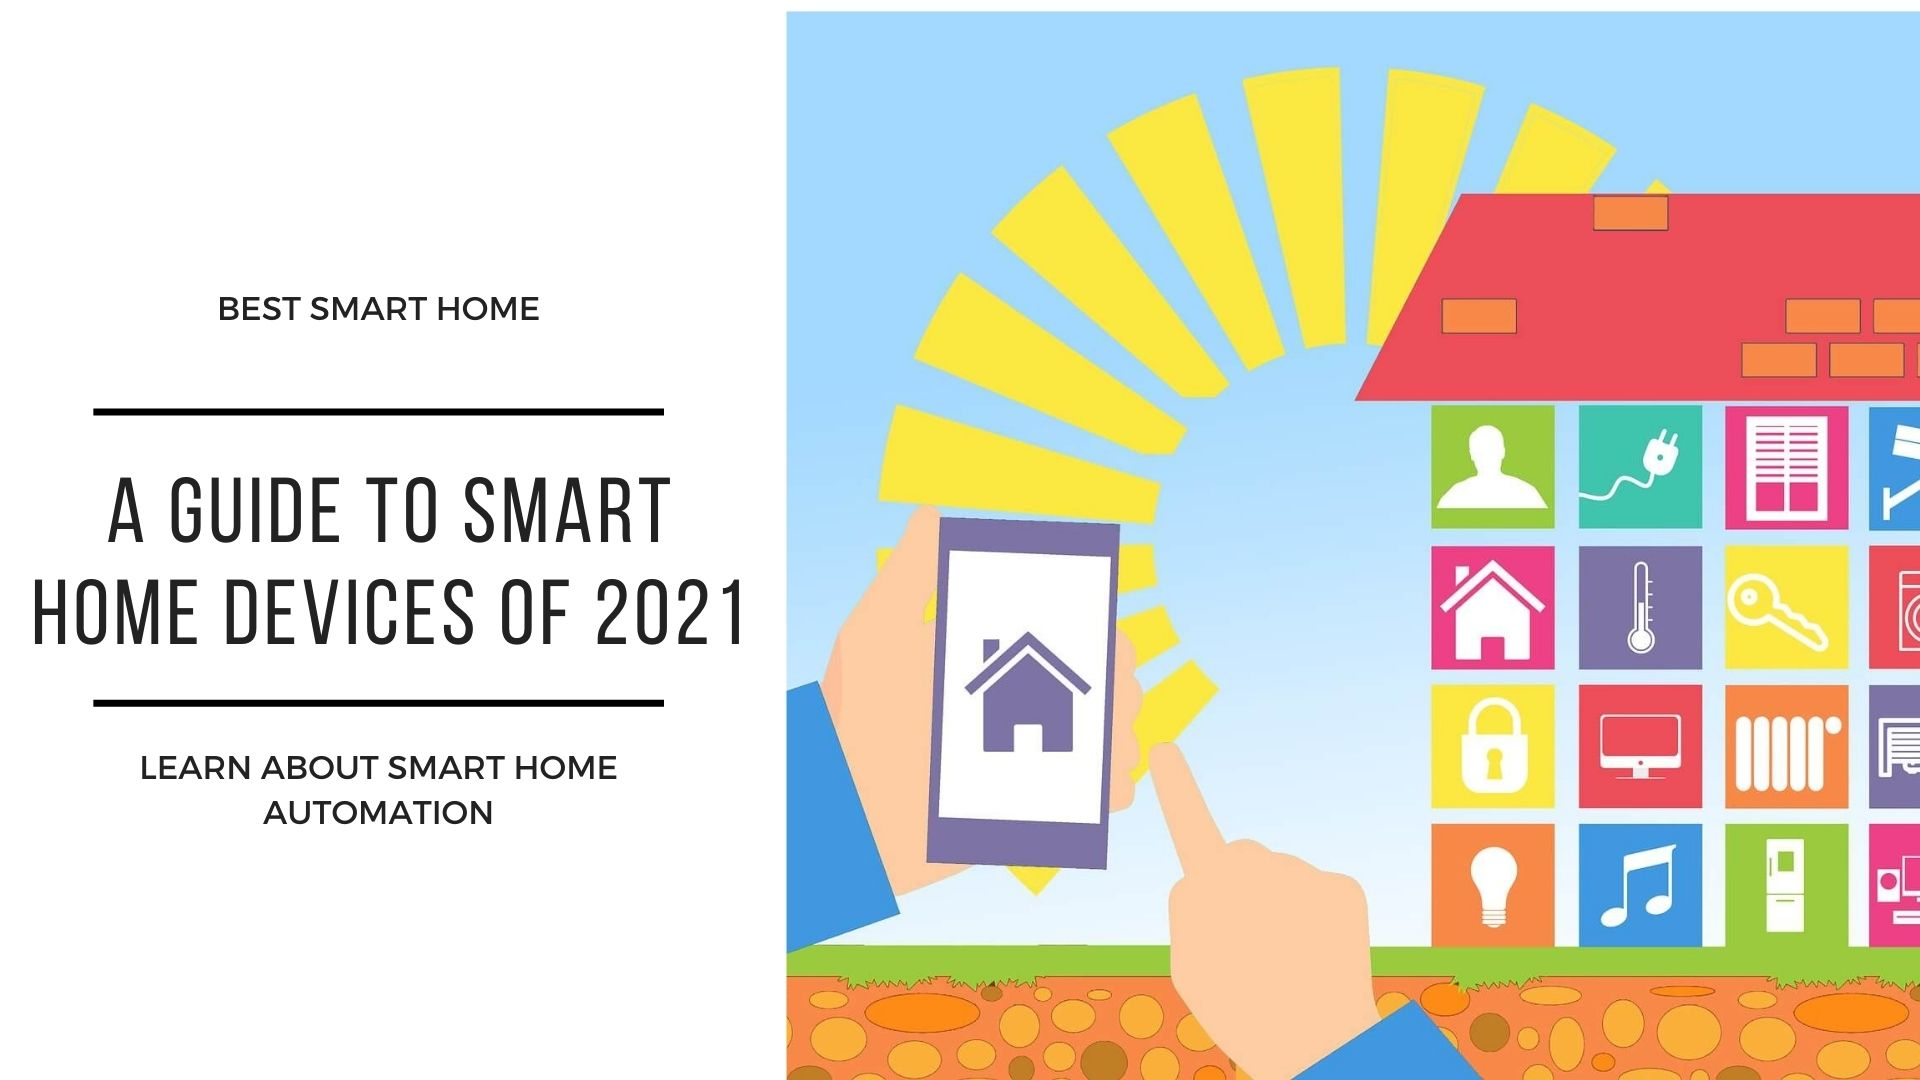 A Gudie to smart home devices